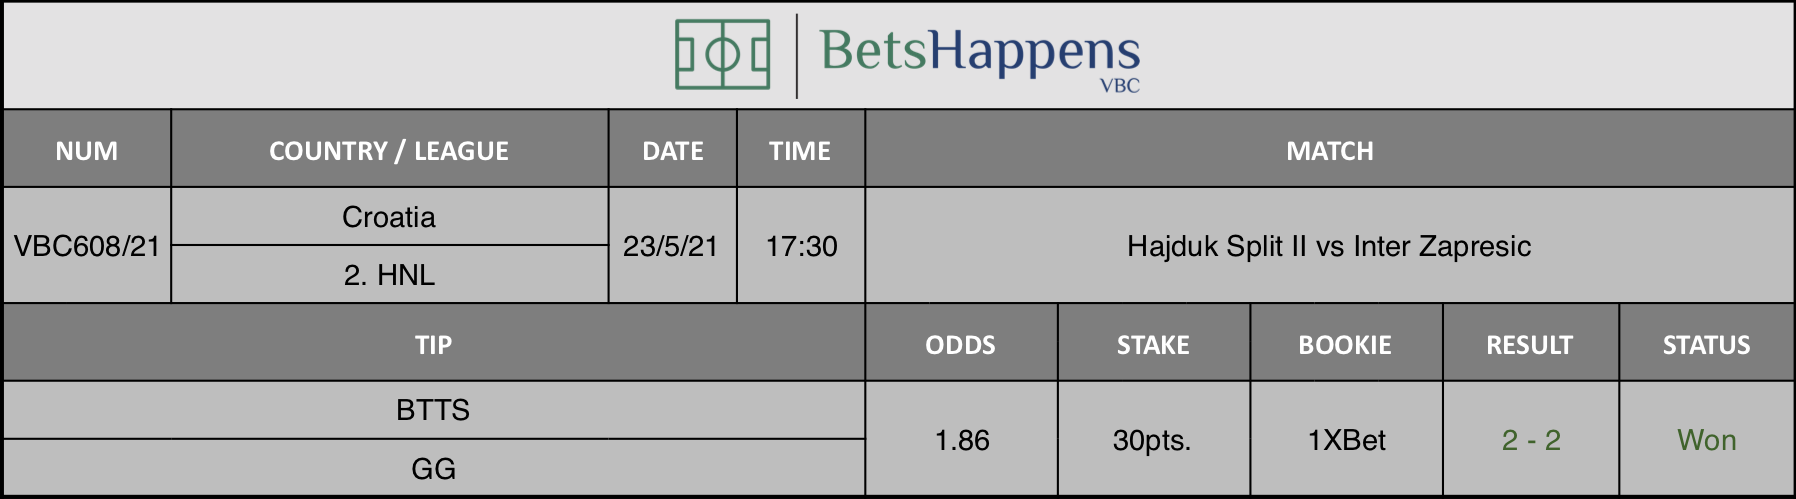 Results of our tip for the Hajduk Split II vs Inter Zapresic match where BTTS F/T  GG is recommended.